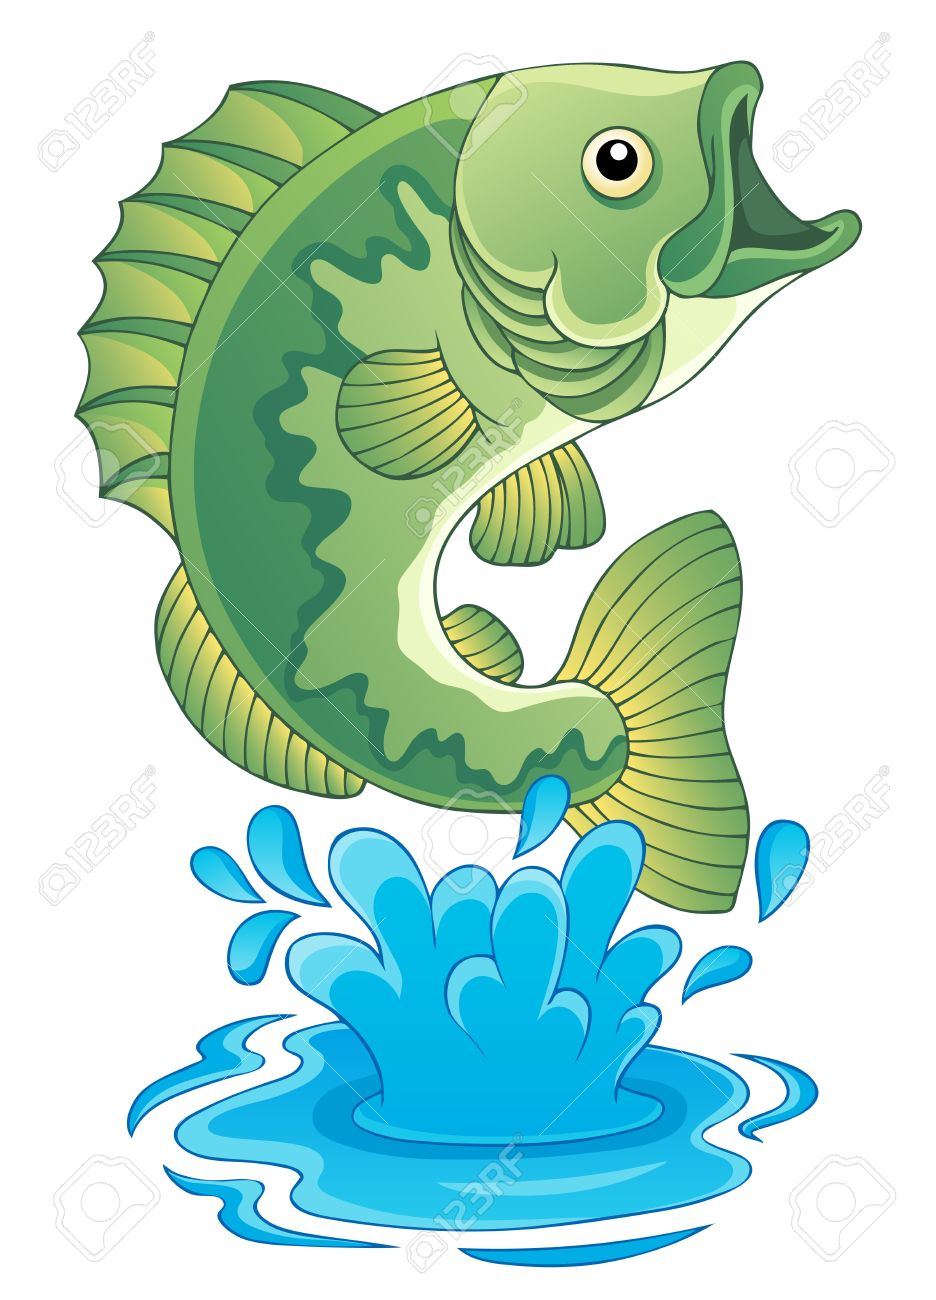 Freshwater fish clipart - Freshwater Fish Theme Image 6 Stock Vector 17794348